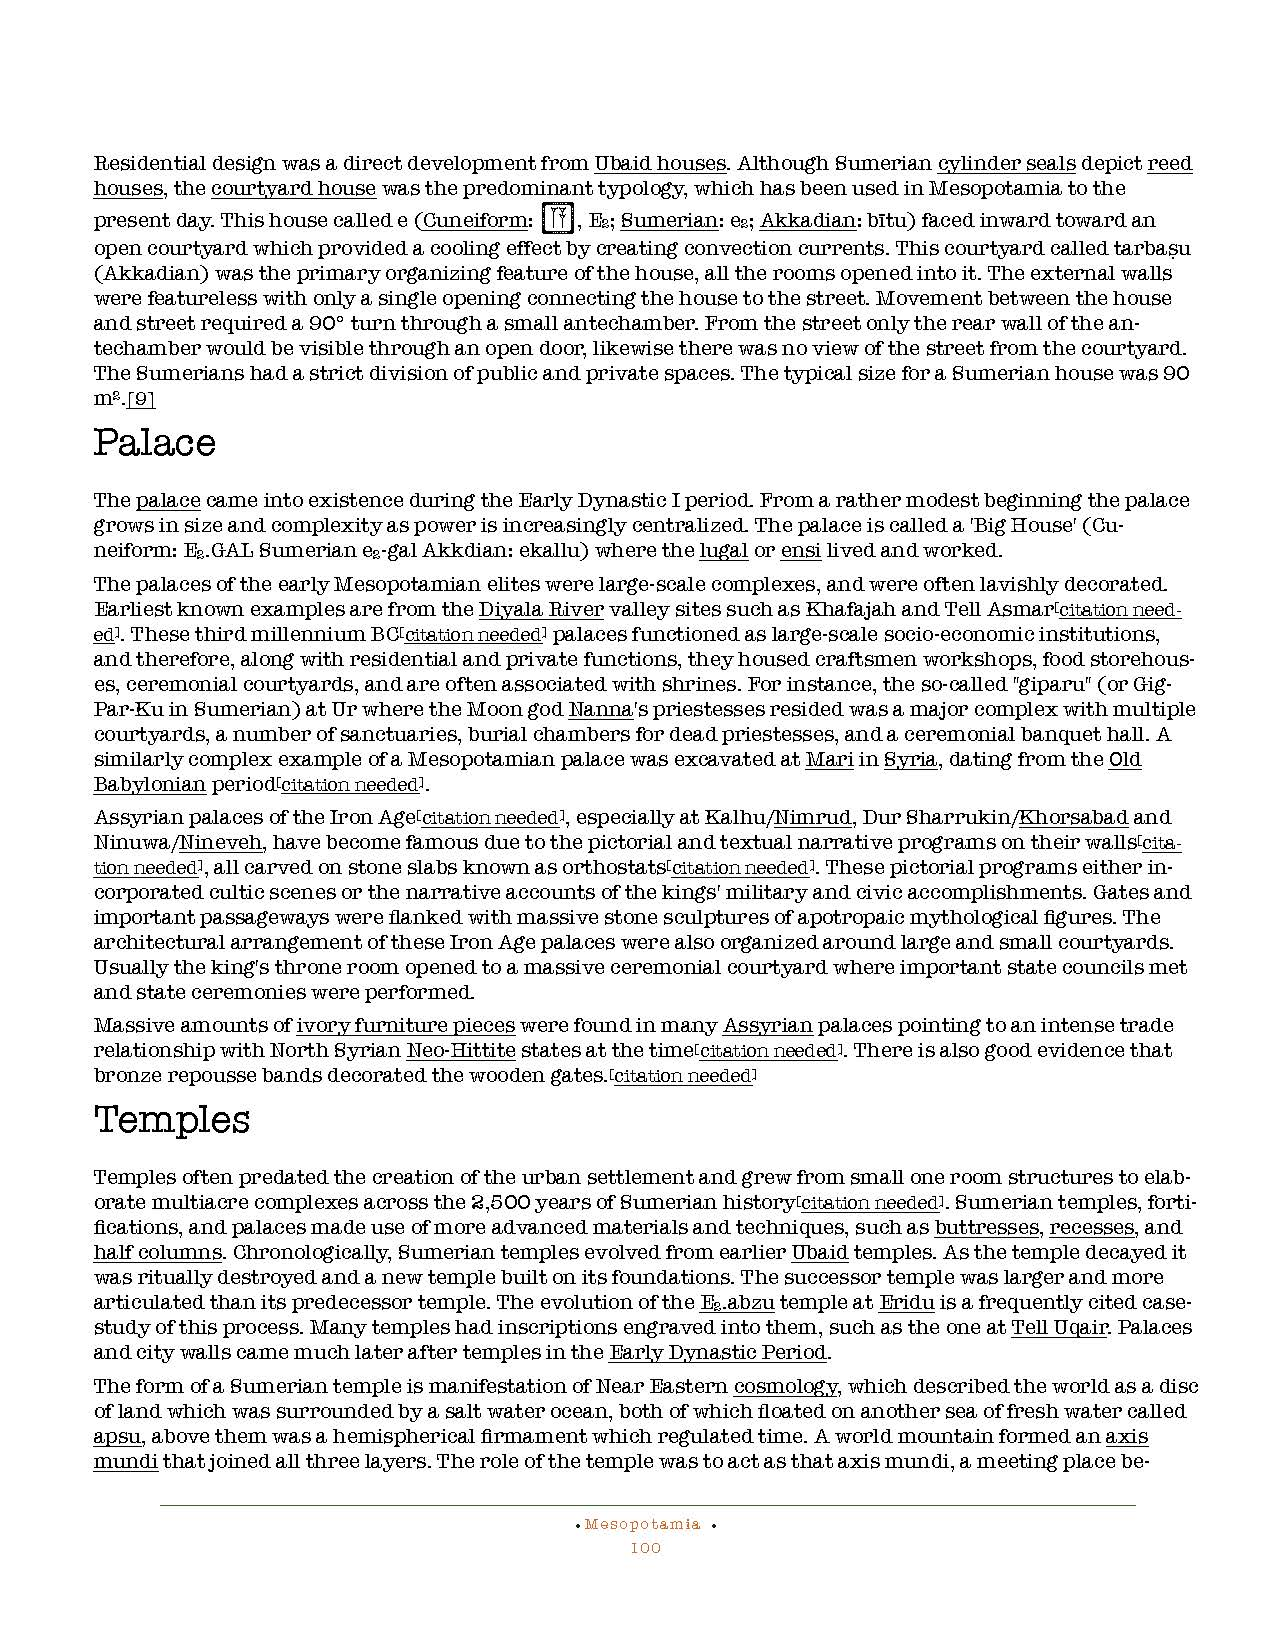 HOCE- Fertile Crescent Notes_Page_100.jpg